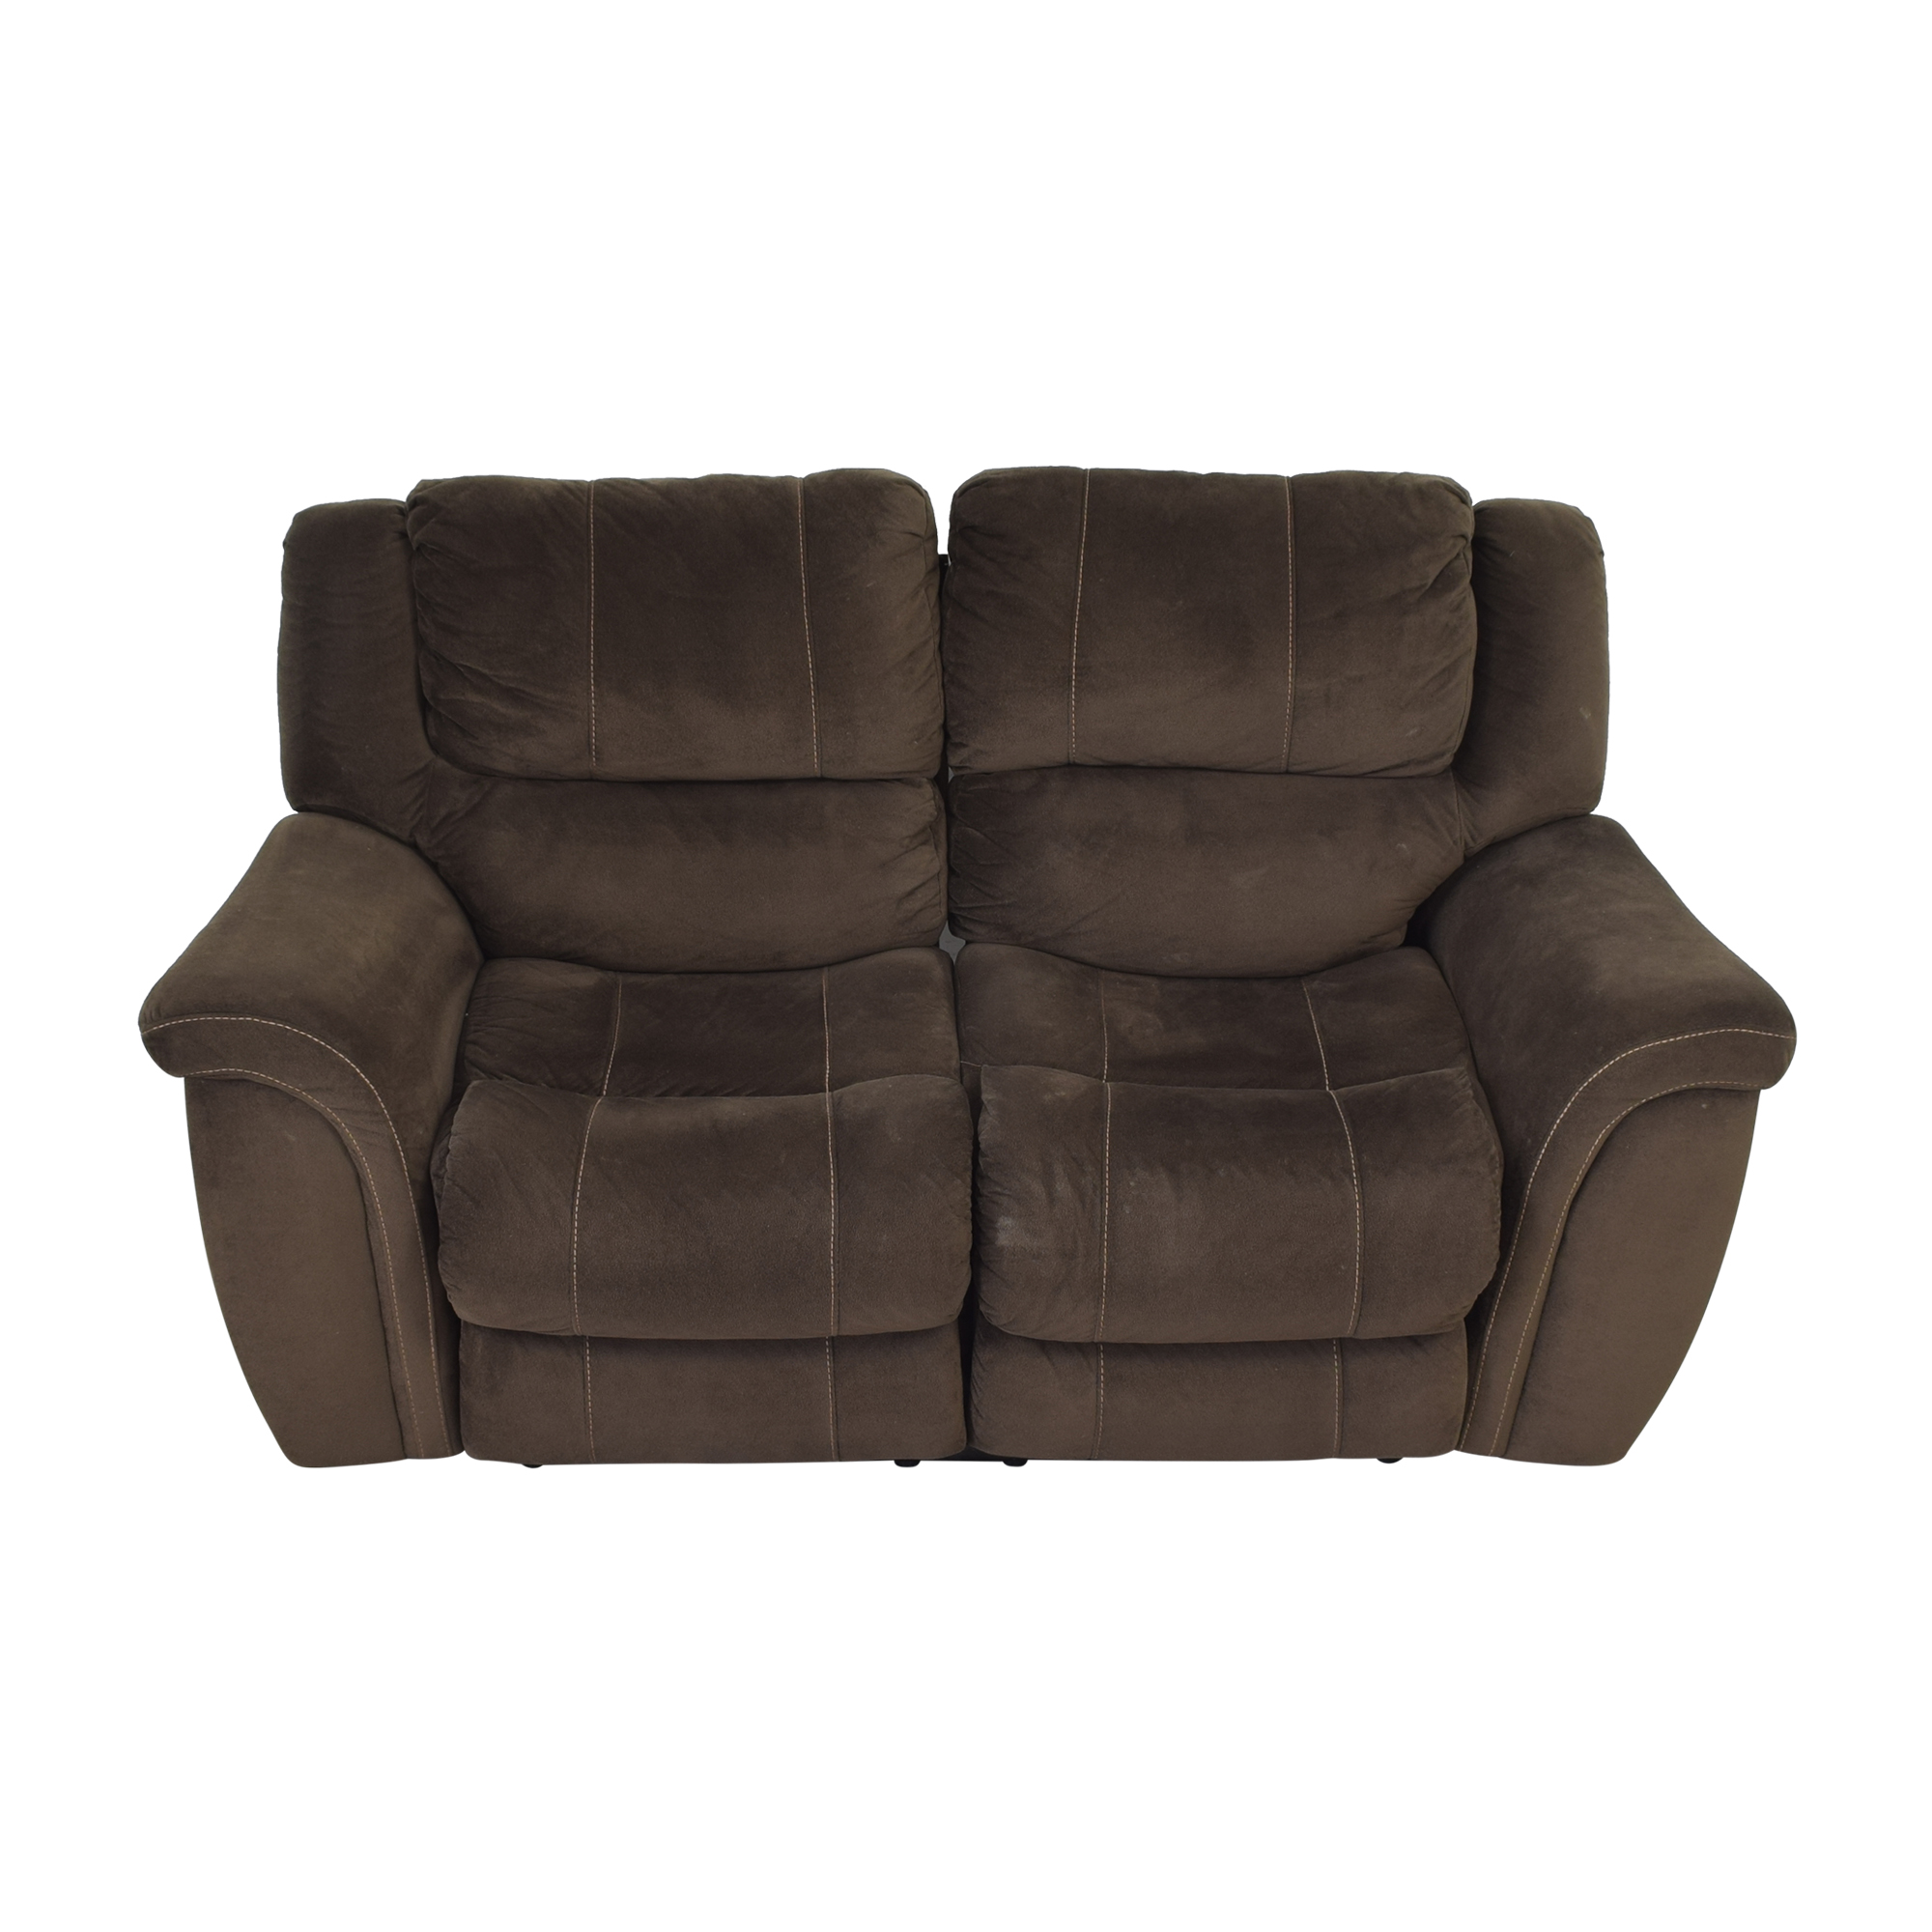 buy Raymour & Flanigan Double Recliner Loveseat Raymour & Flanigan